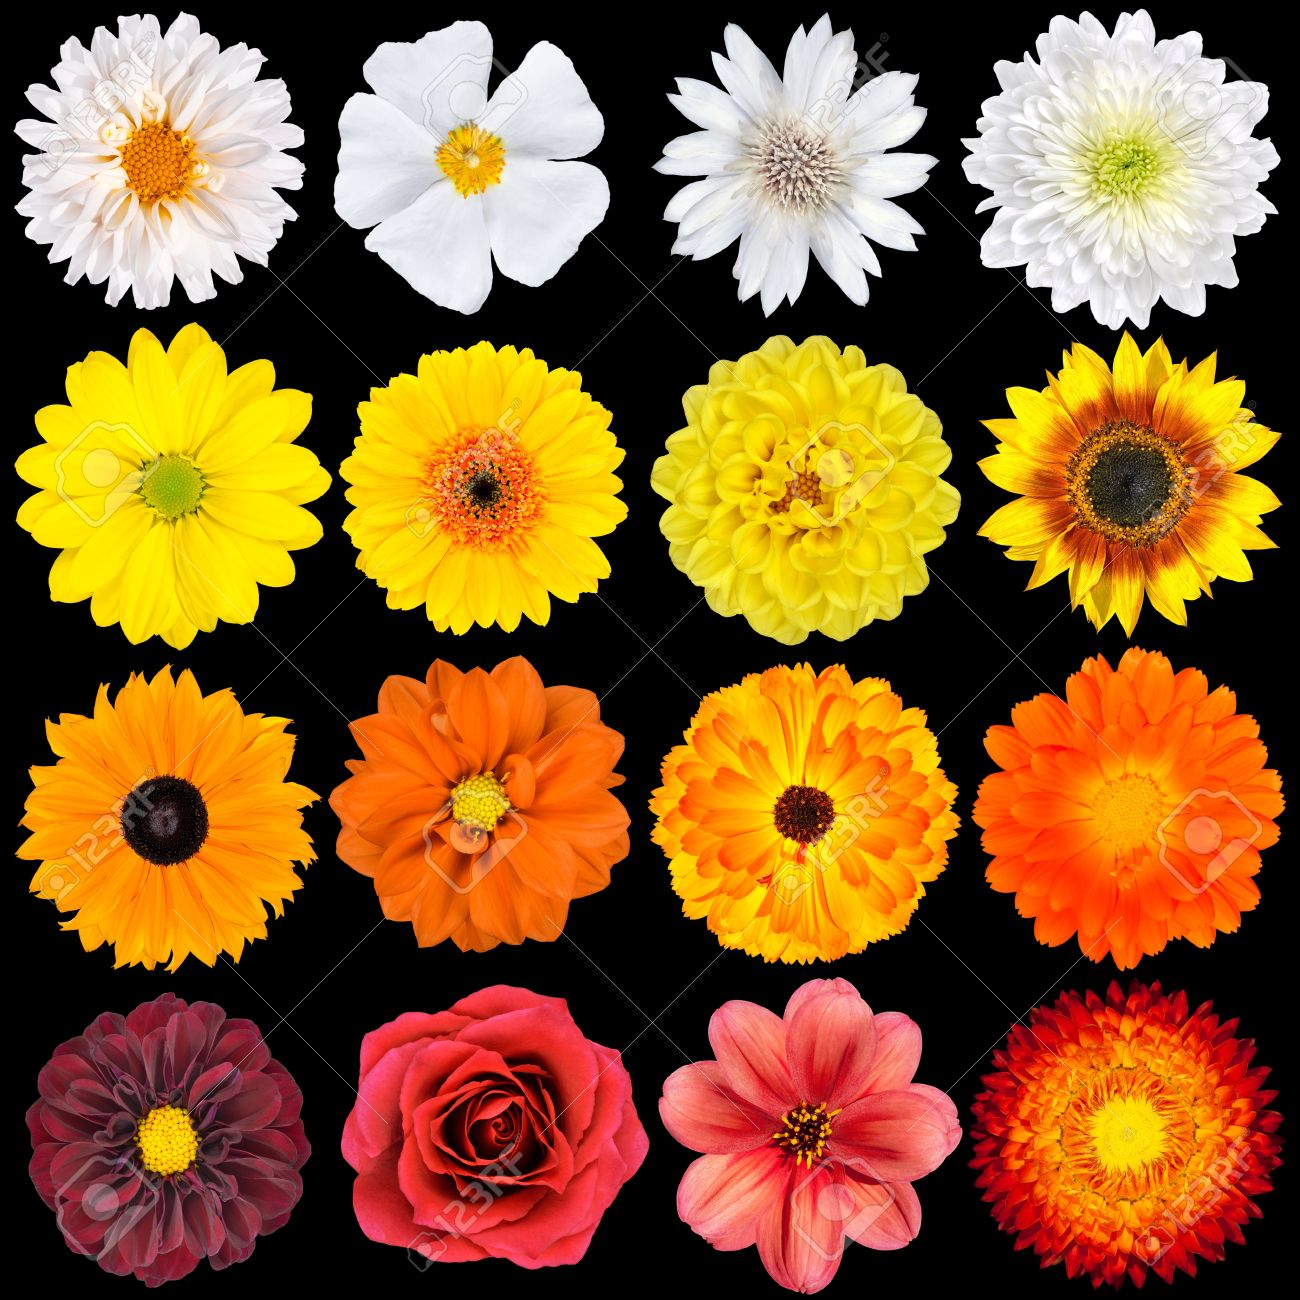 Selection of various white yellow orange flowers isolated on selection of various white yellow orange flowers isolated on black background red mightylinksfo